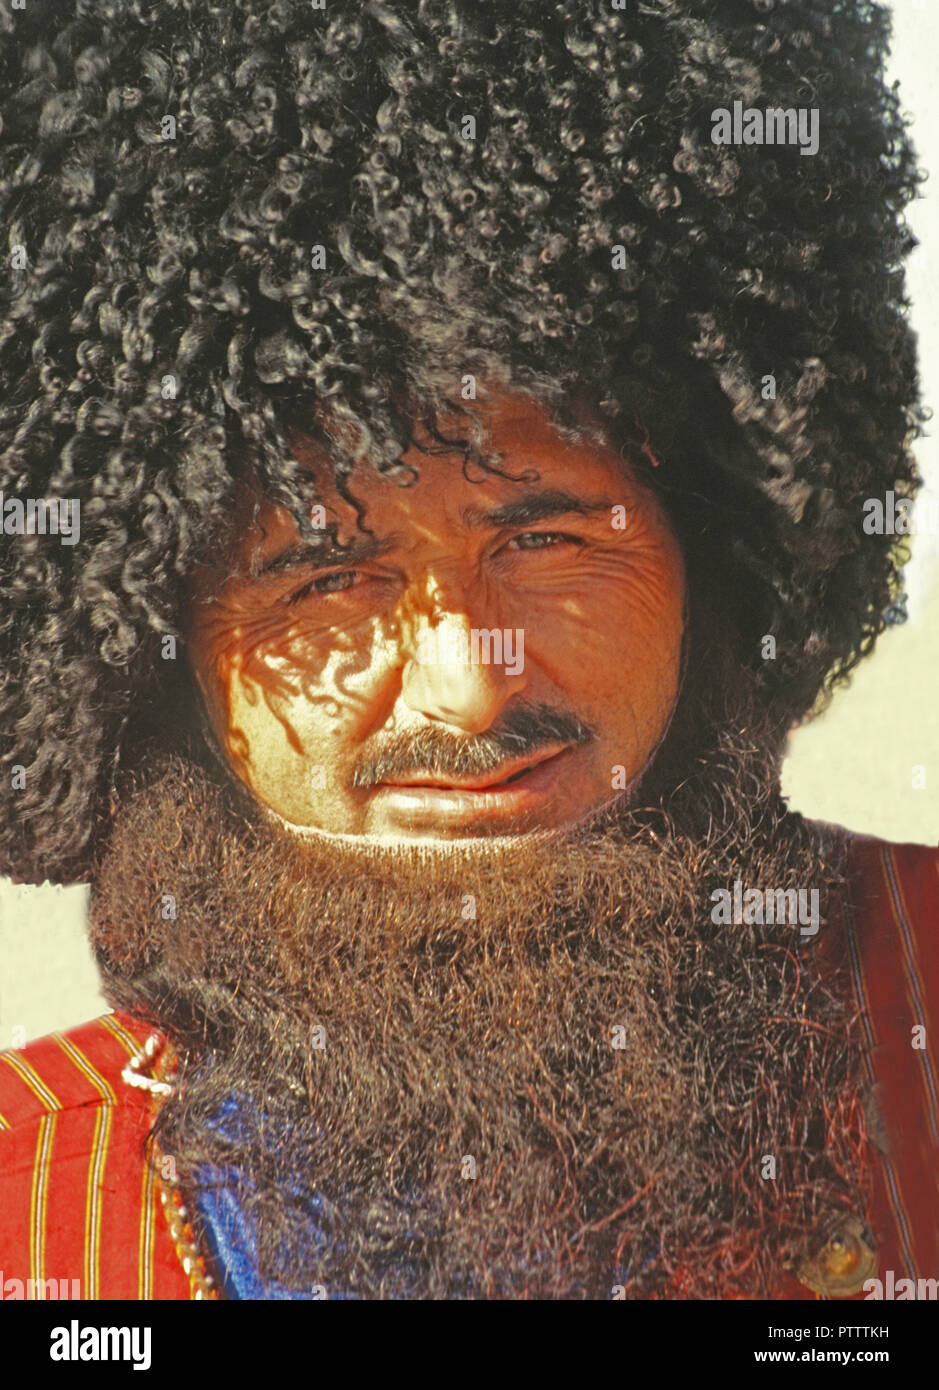 Turkmenistan people - Stock Image